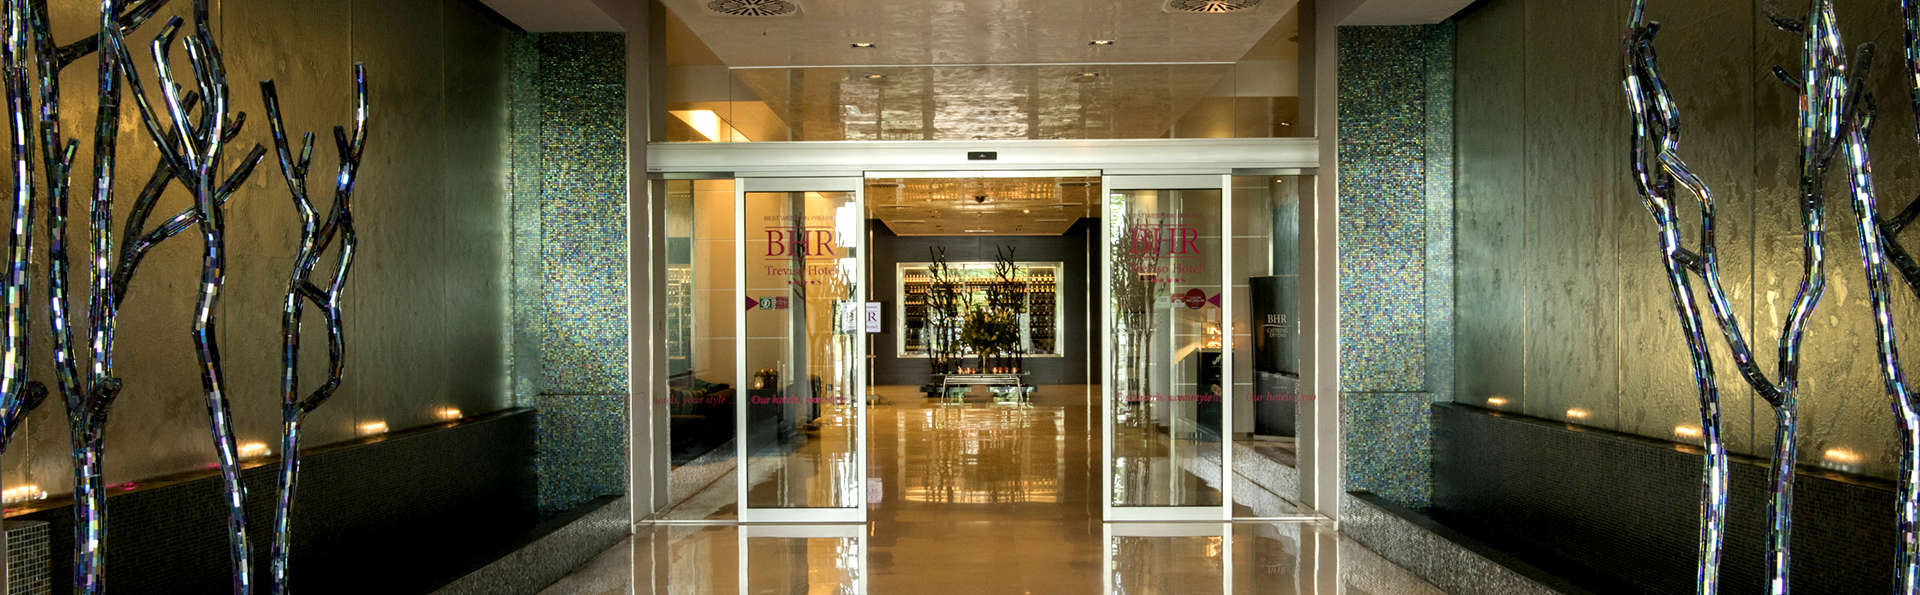 Best Western Premier BHR Treviso Hotel - Edit_Entrance.jpg